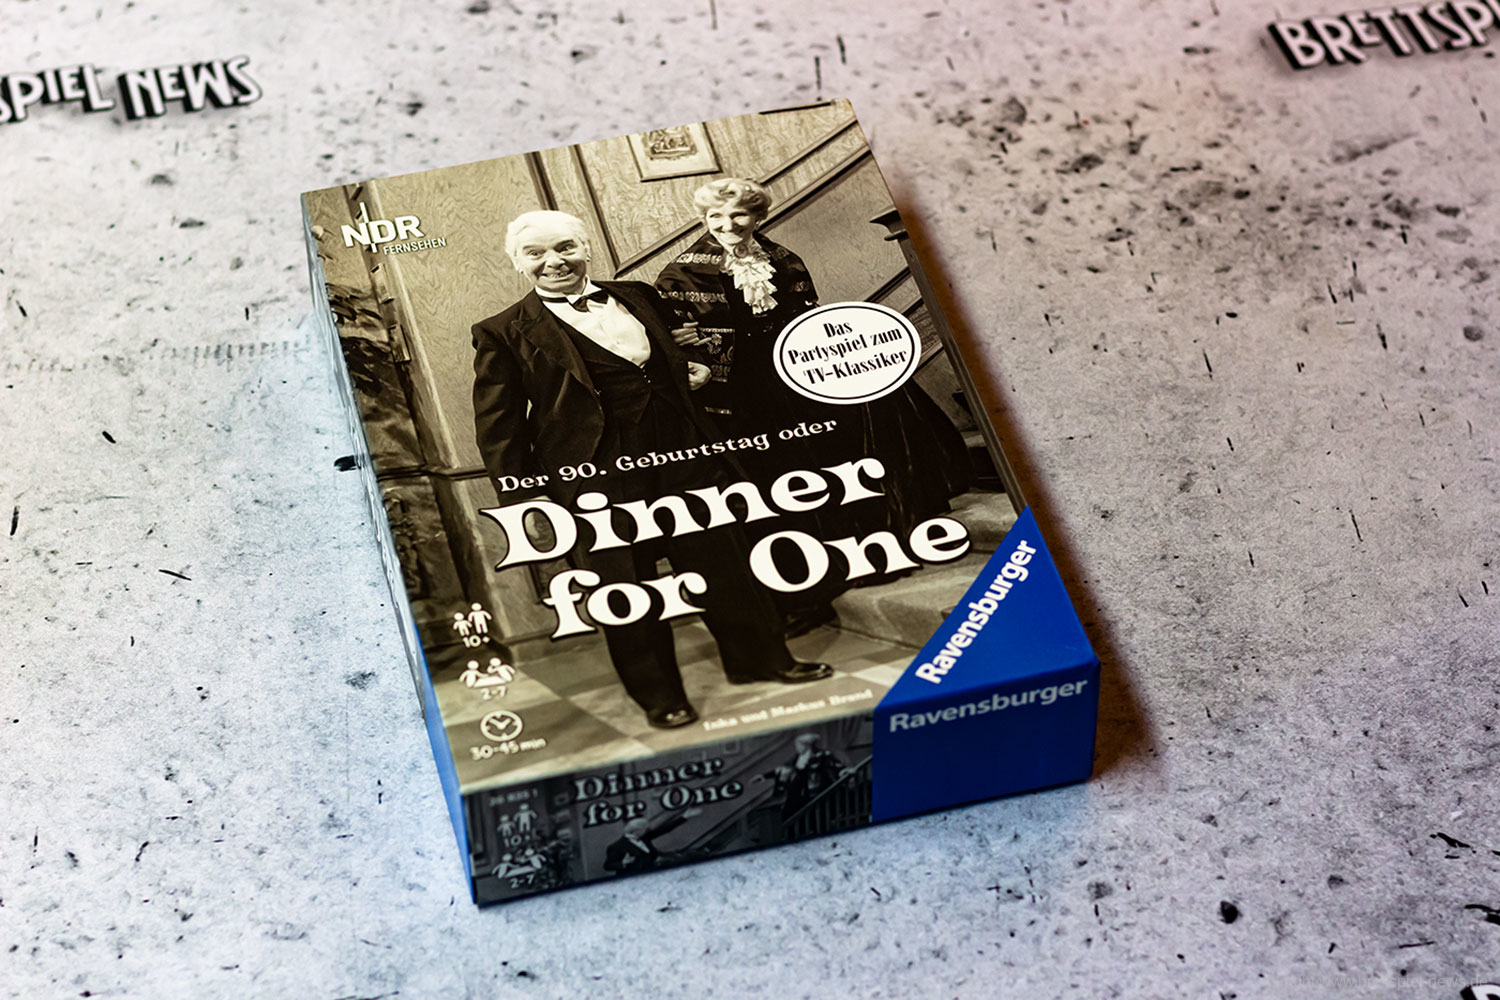 DINNER FOR ONE // Bilder vom Spiel